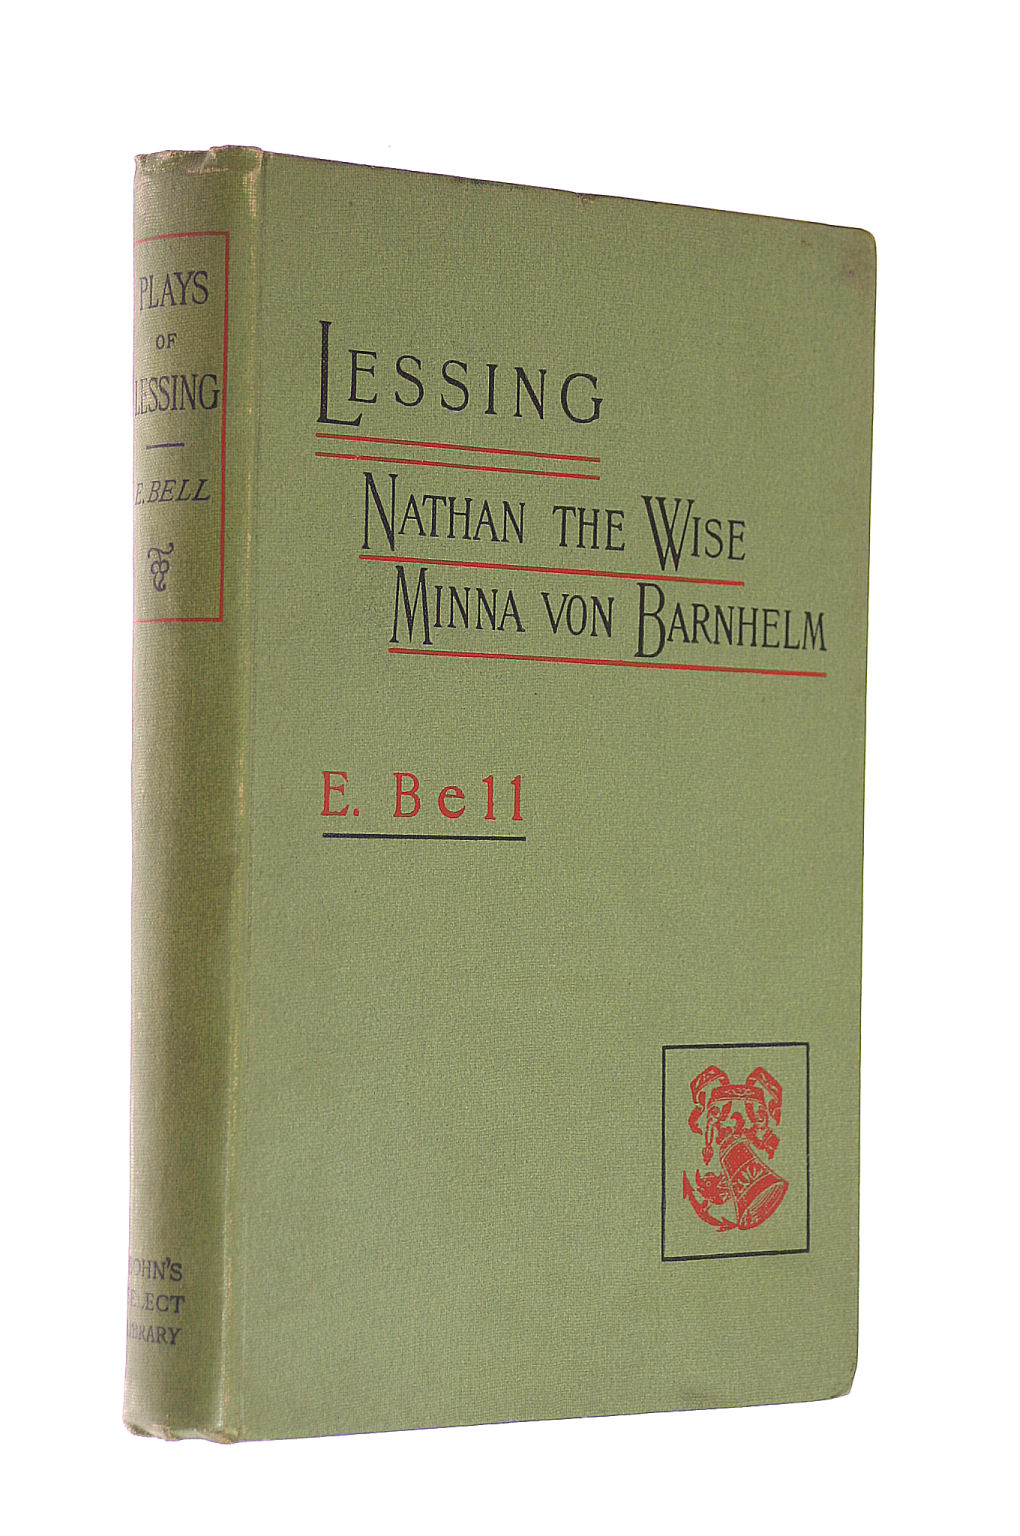 Image for Plays of Lessing: Nathan the Wise and Minna Von Barnhelm, Tr. Into English. Edited by E. Bell